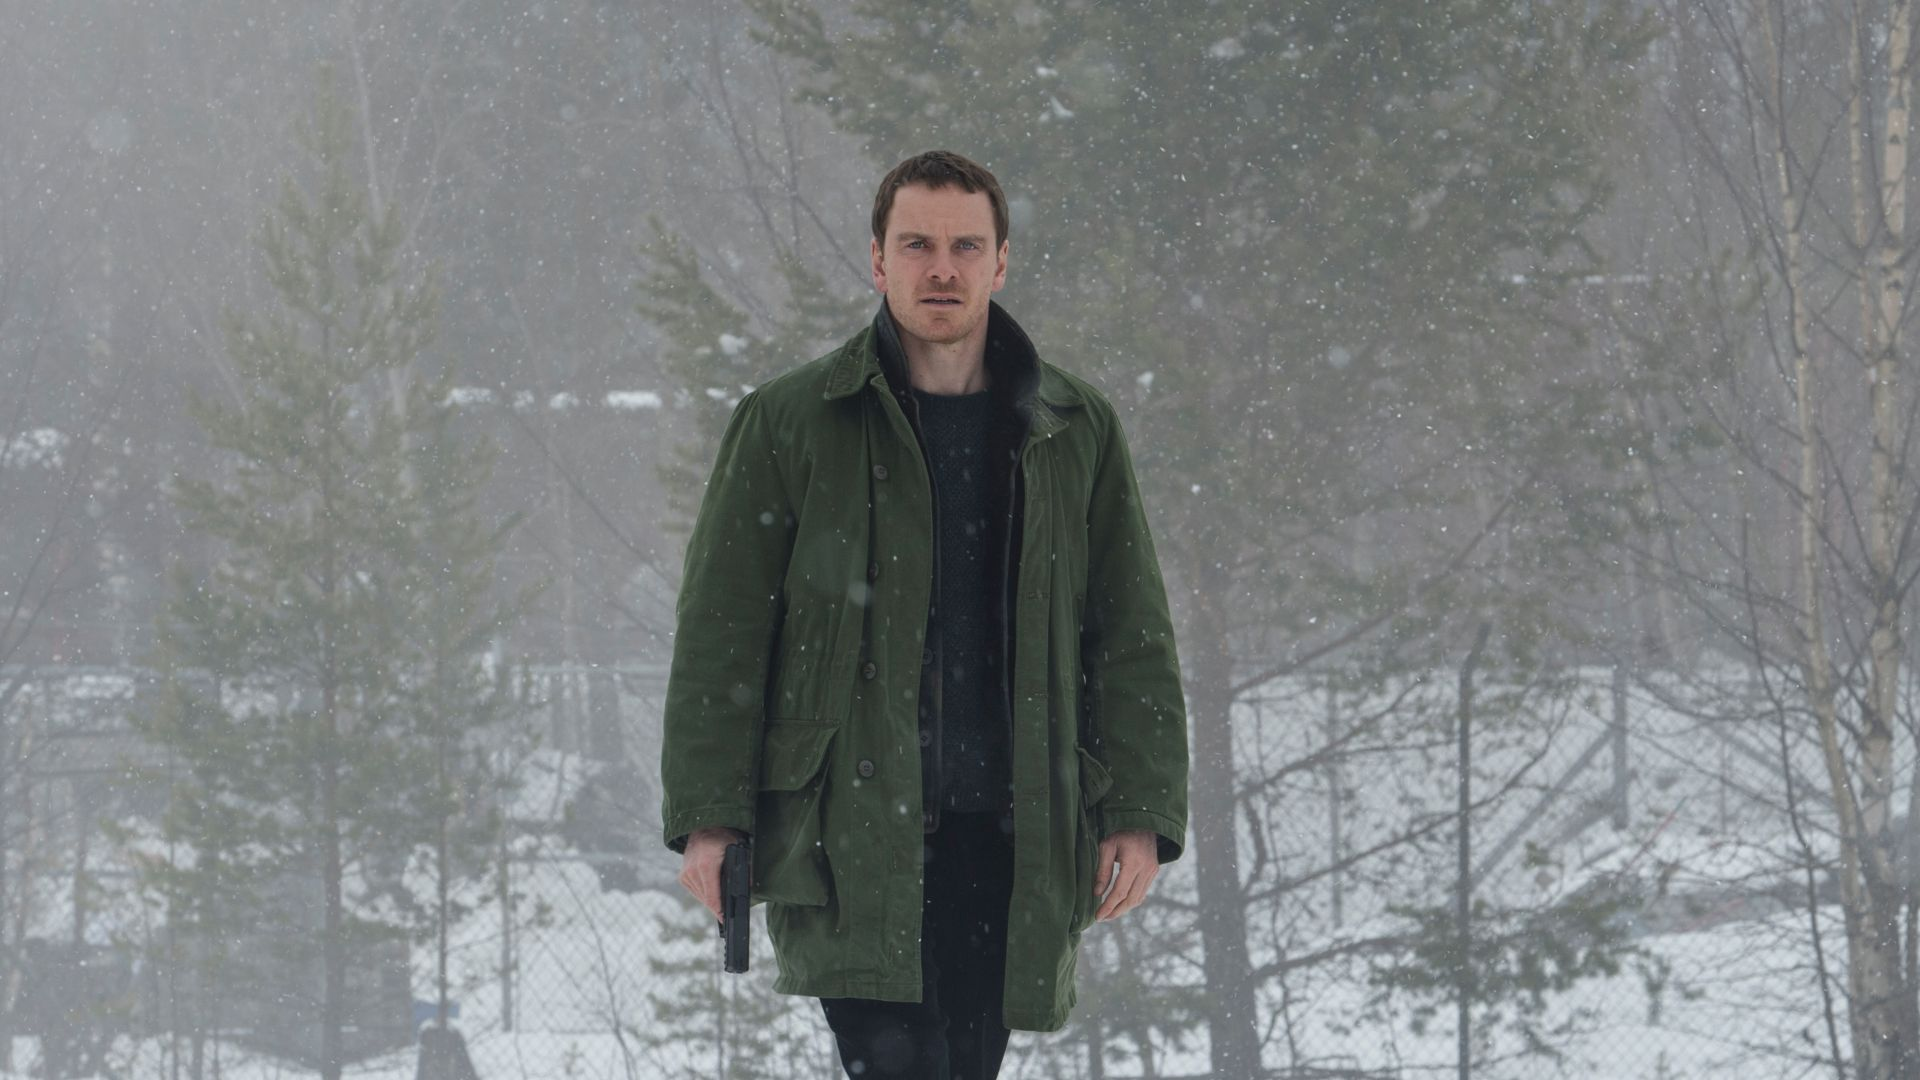 The Snowman, Michael Fassbender, 4k (horizontal)